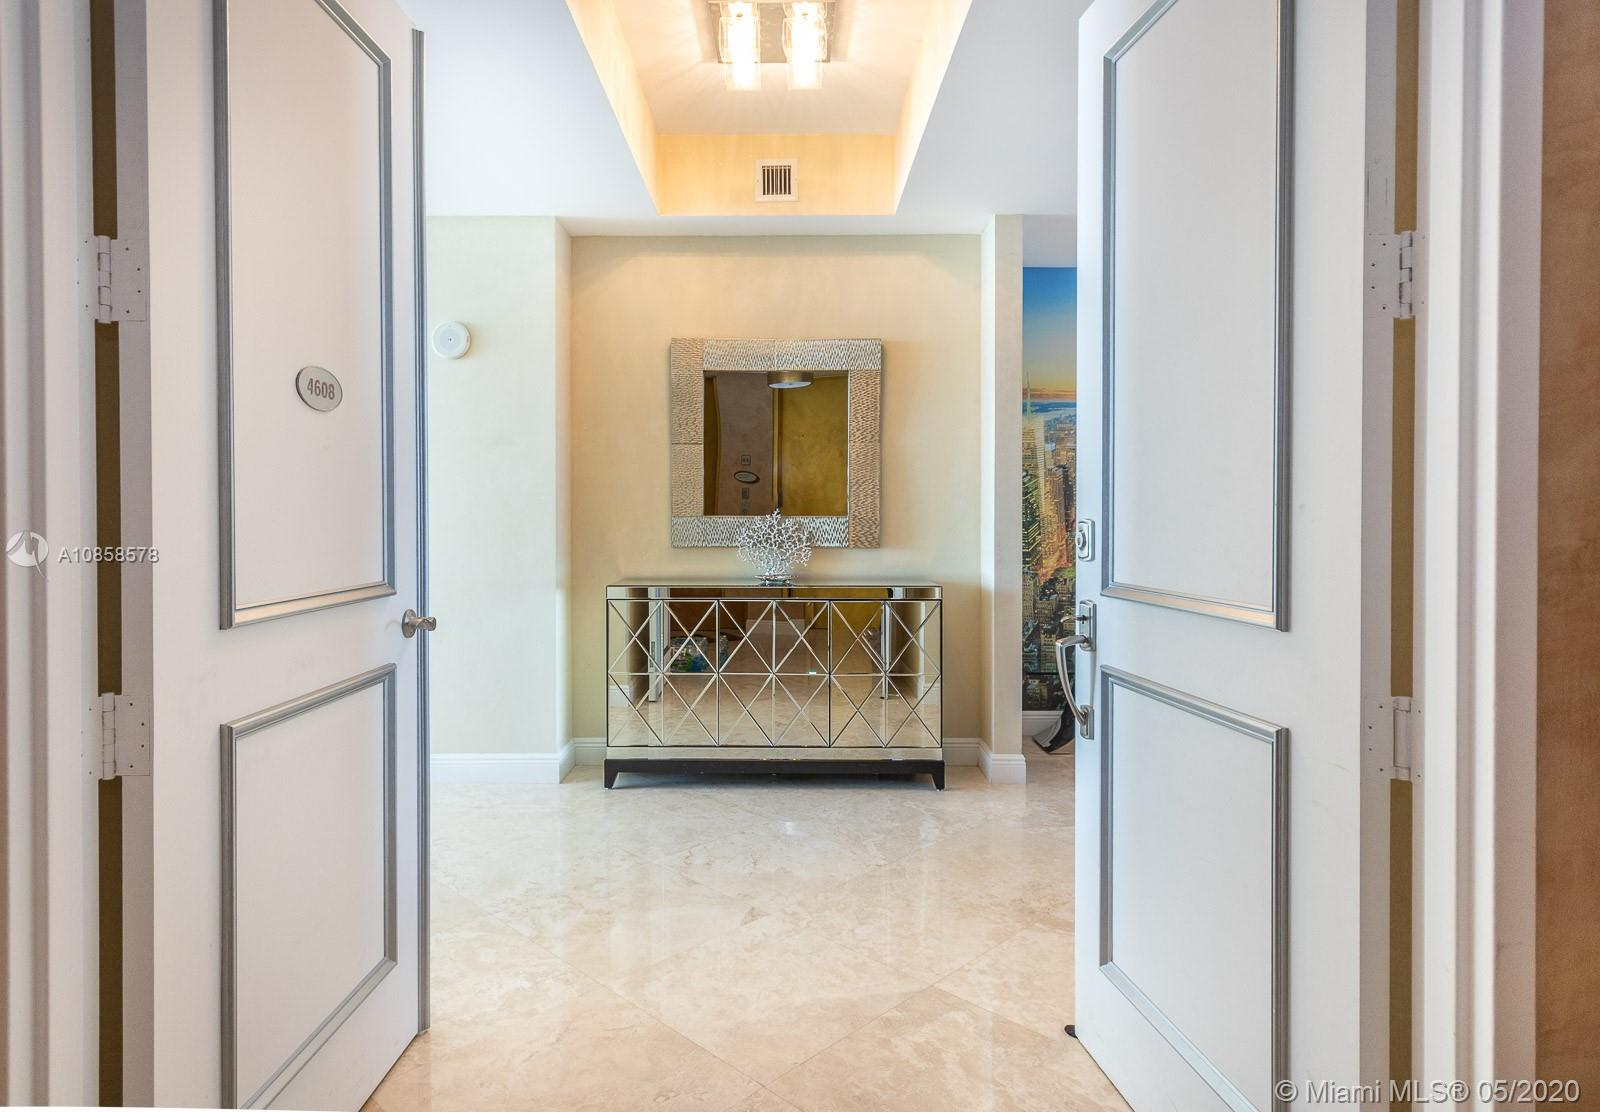 18101  Collins Ave #4608 For Sale A10858578, FL